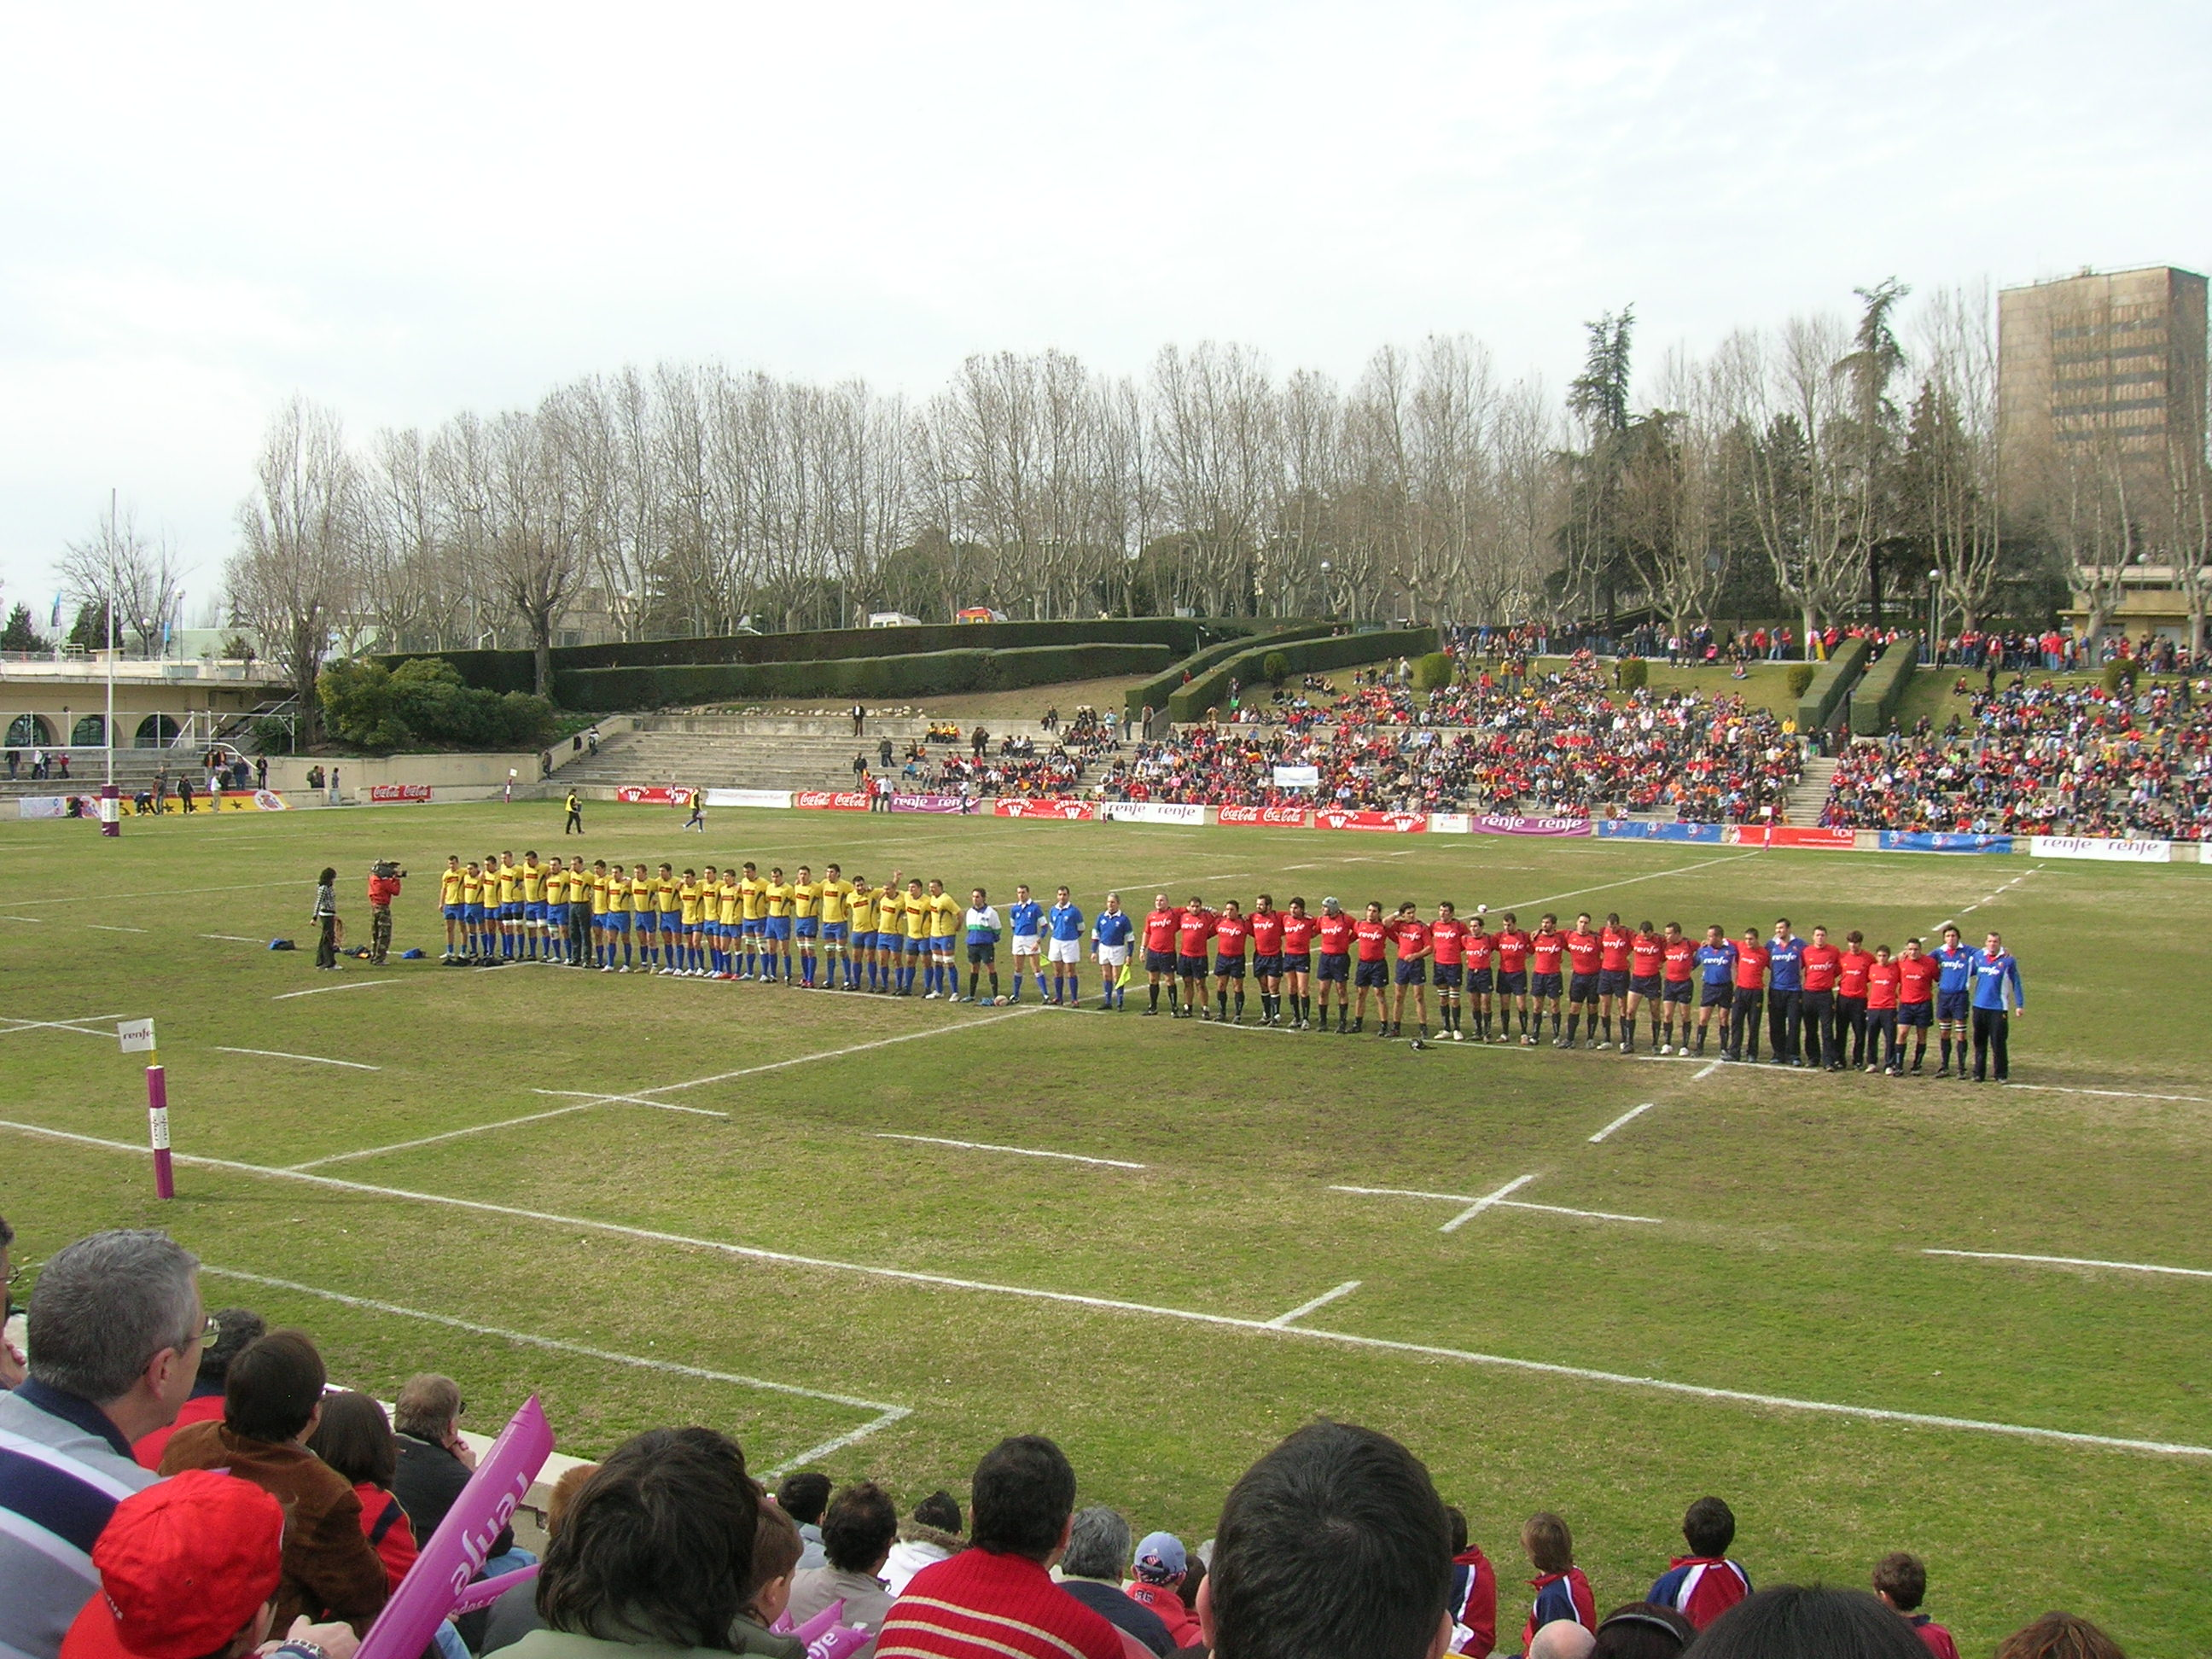 Estadio Nacional Complutense: Spanien-Rumänien (Six Nations B, 2008) (Wikimedia Commons/David-maldini CC)